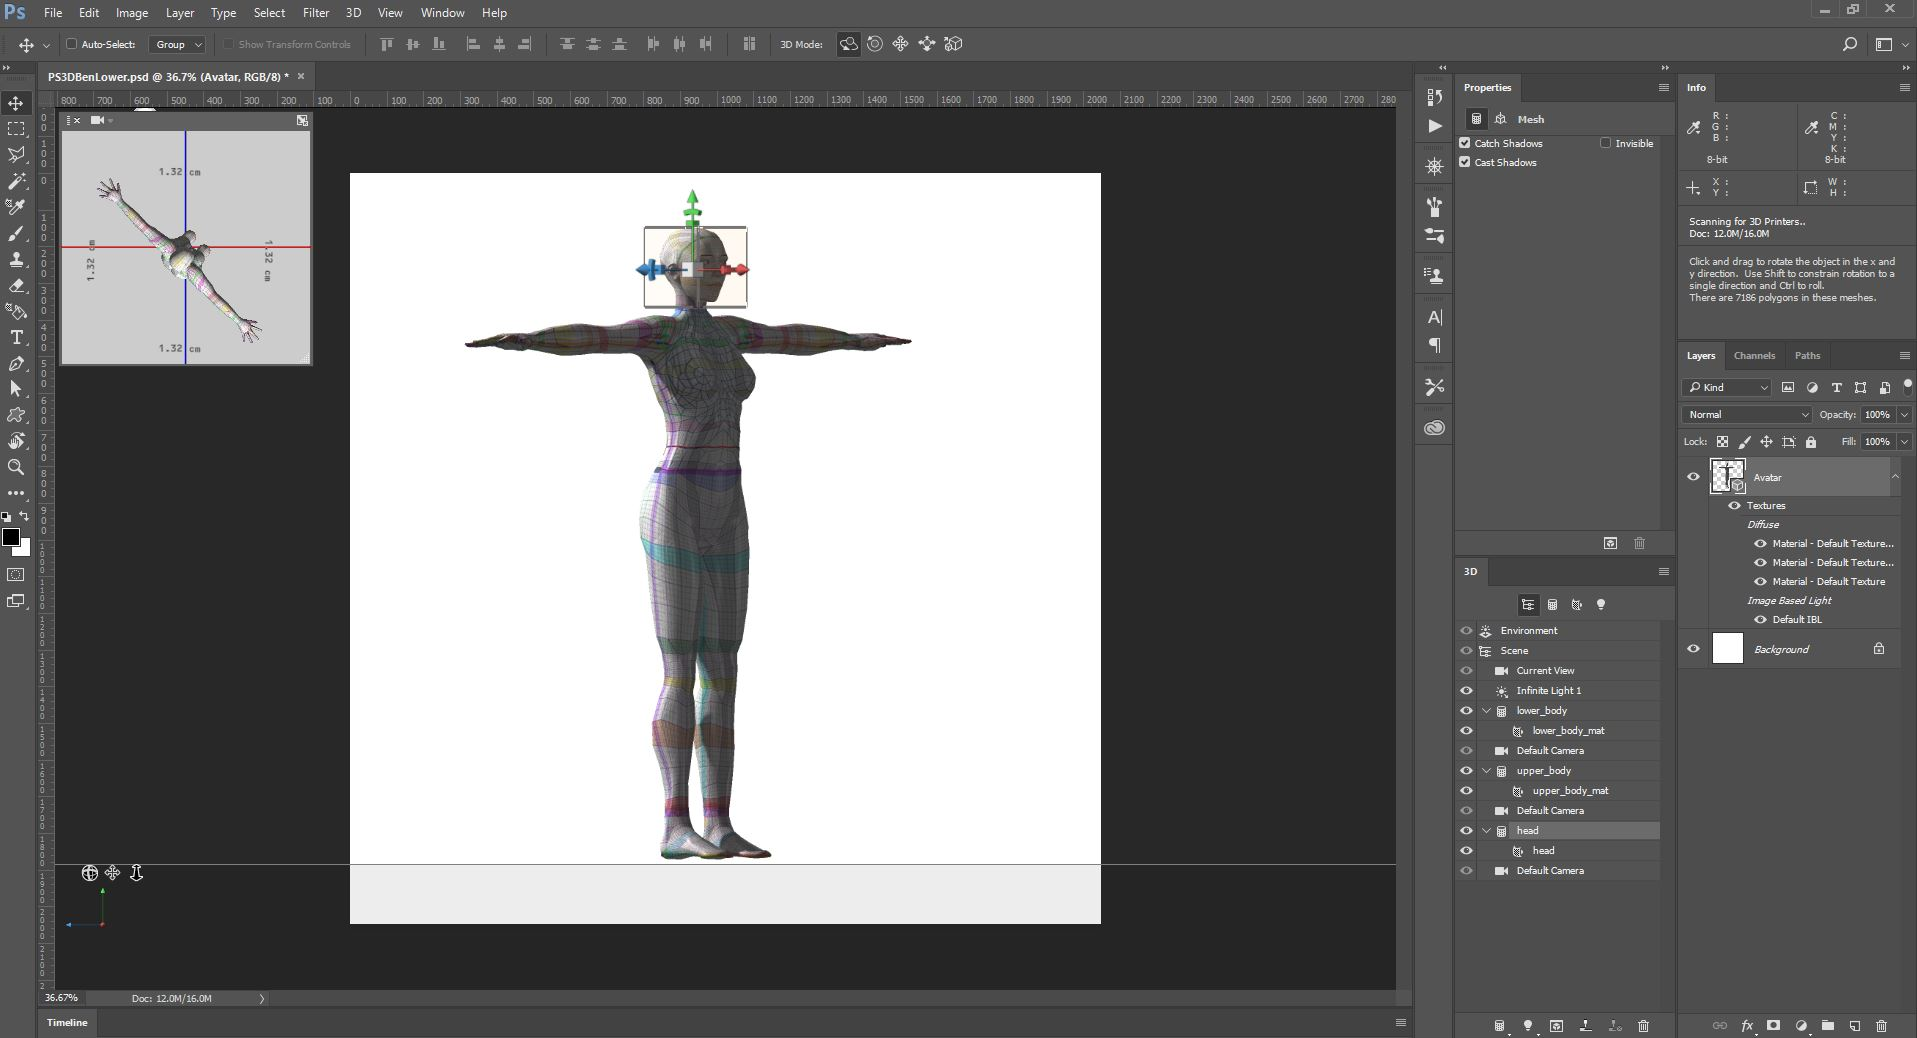 Photoshop 3D: How to make textures for Second Life Avatars